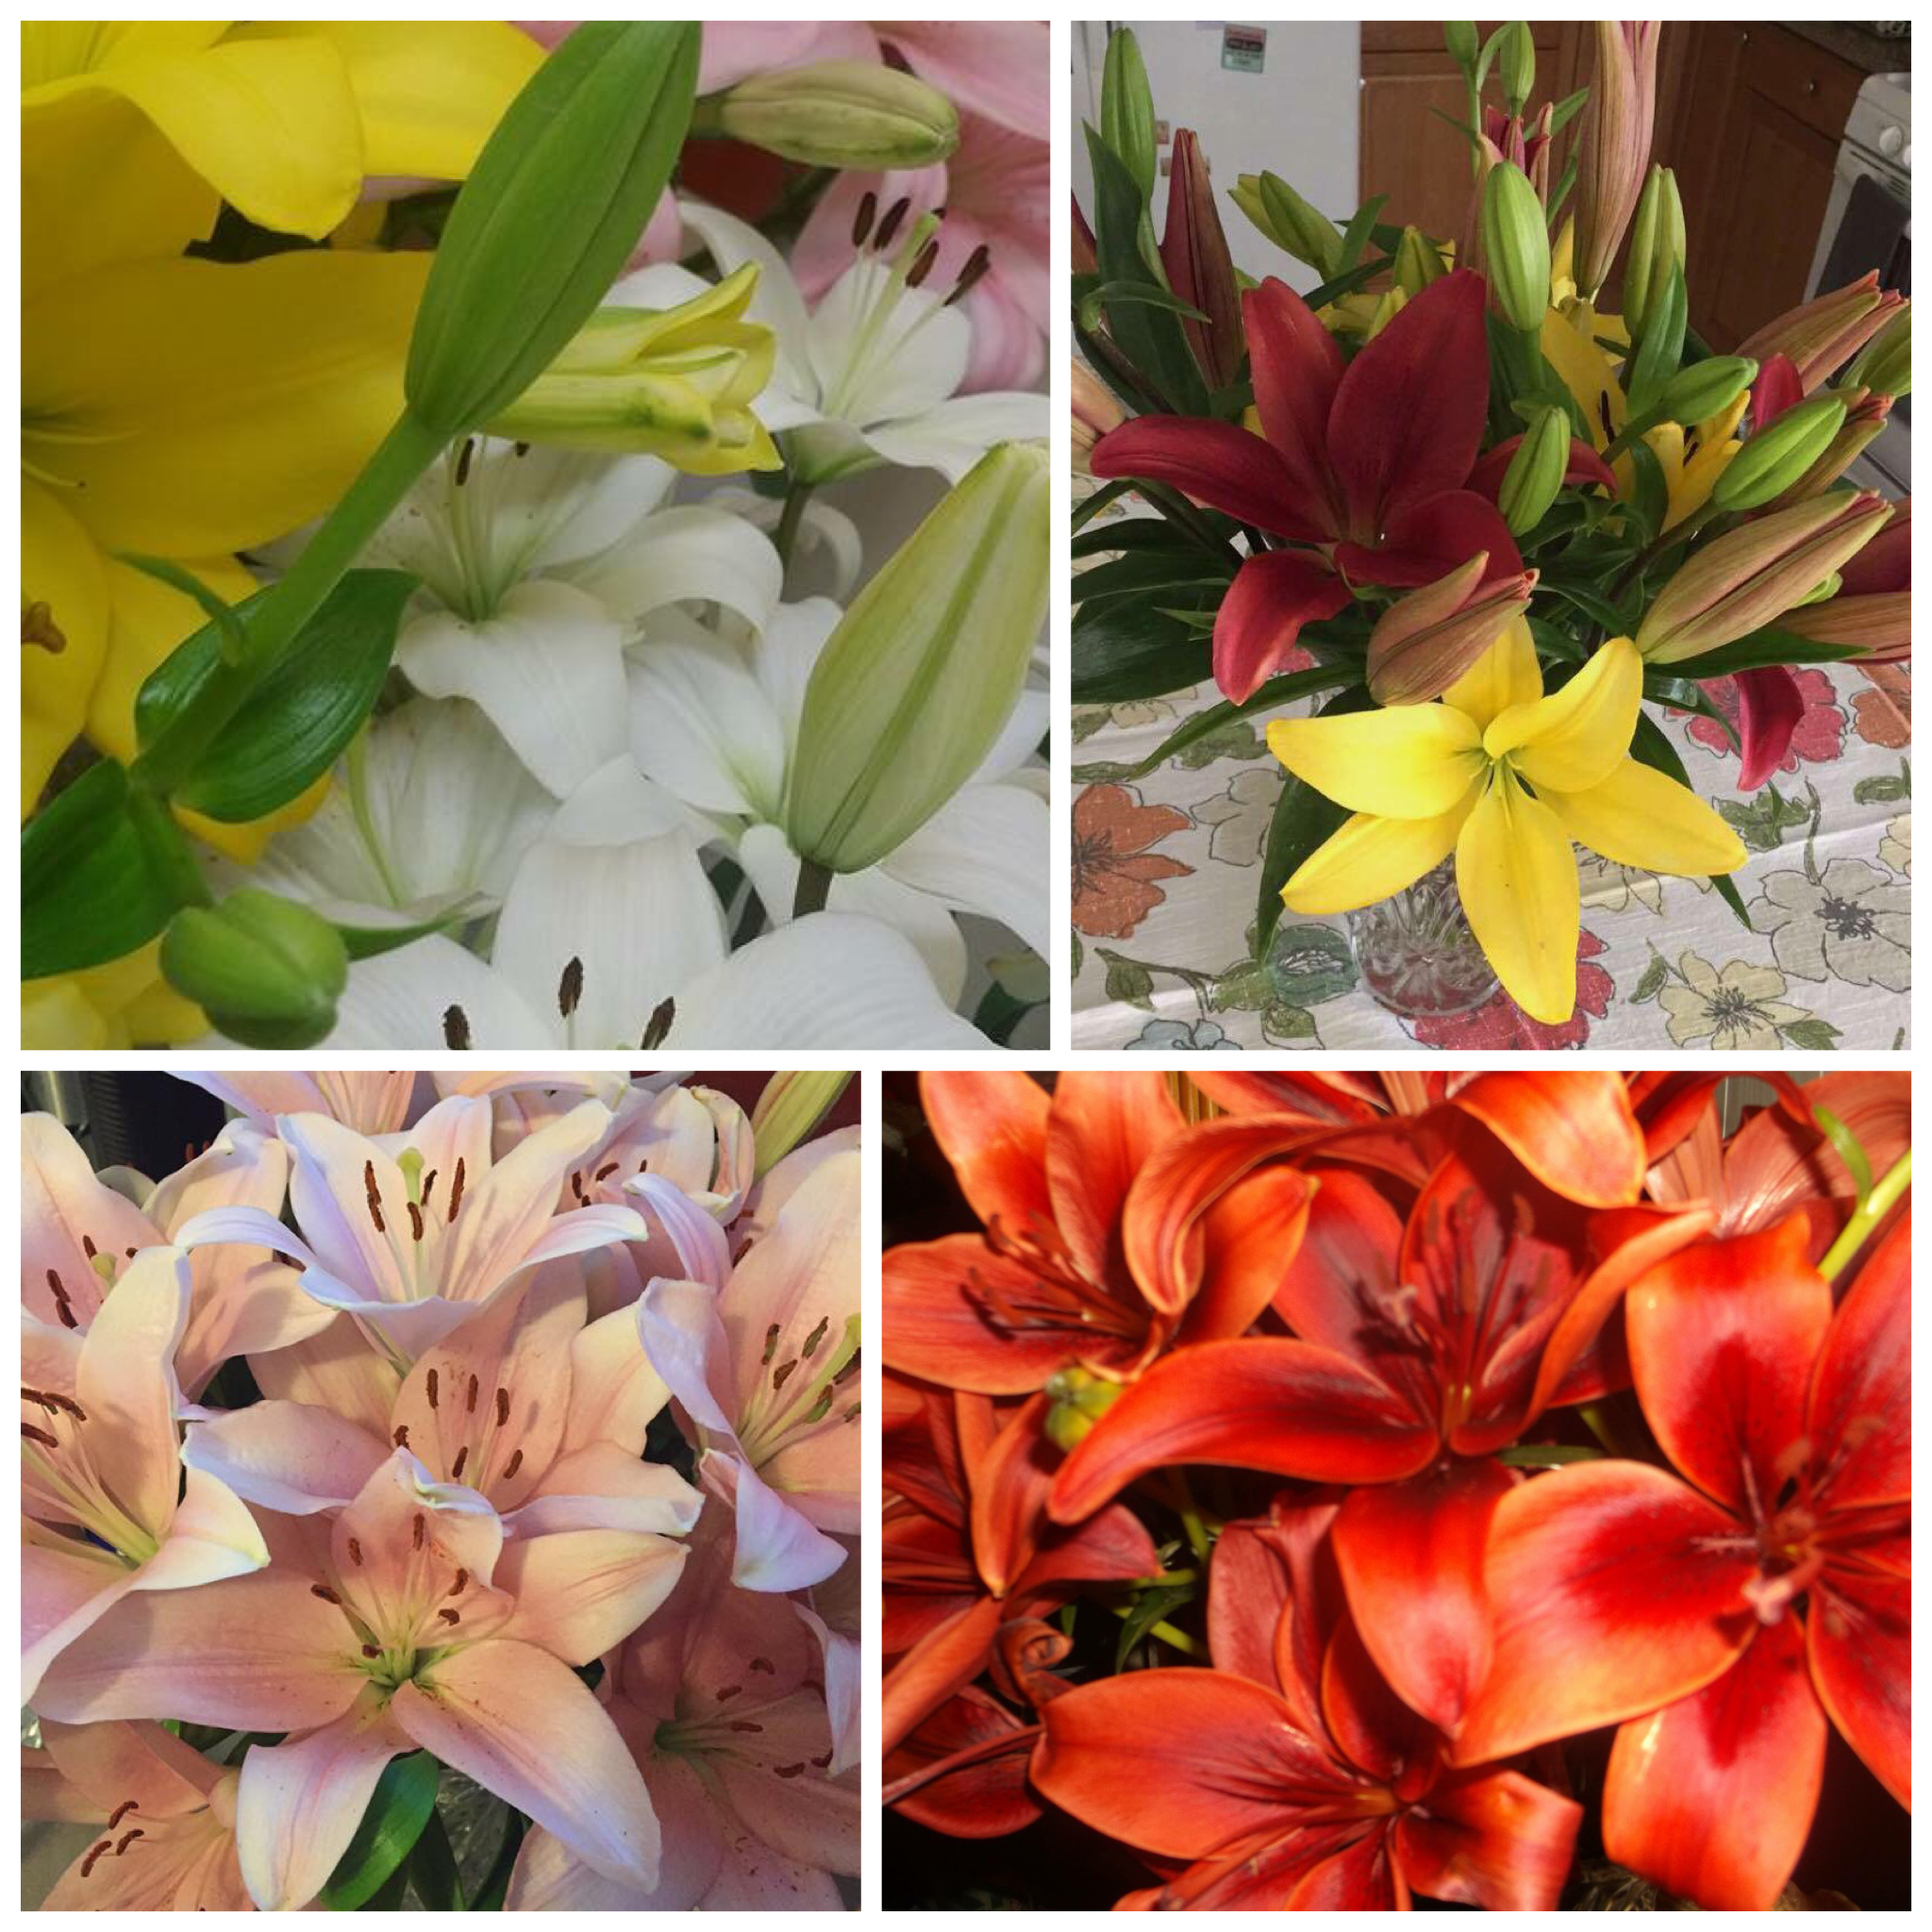 - We welcome your participation in the CRCD Desert Lily Campaign.